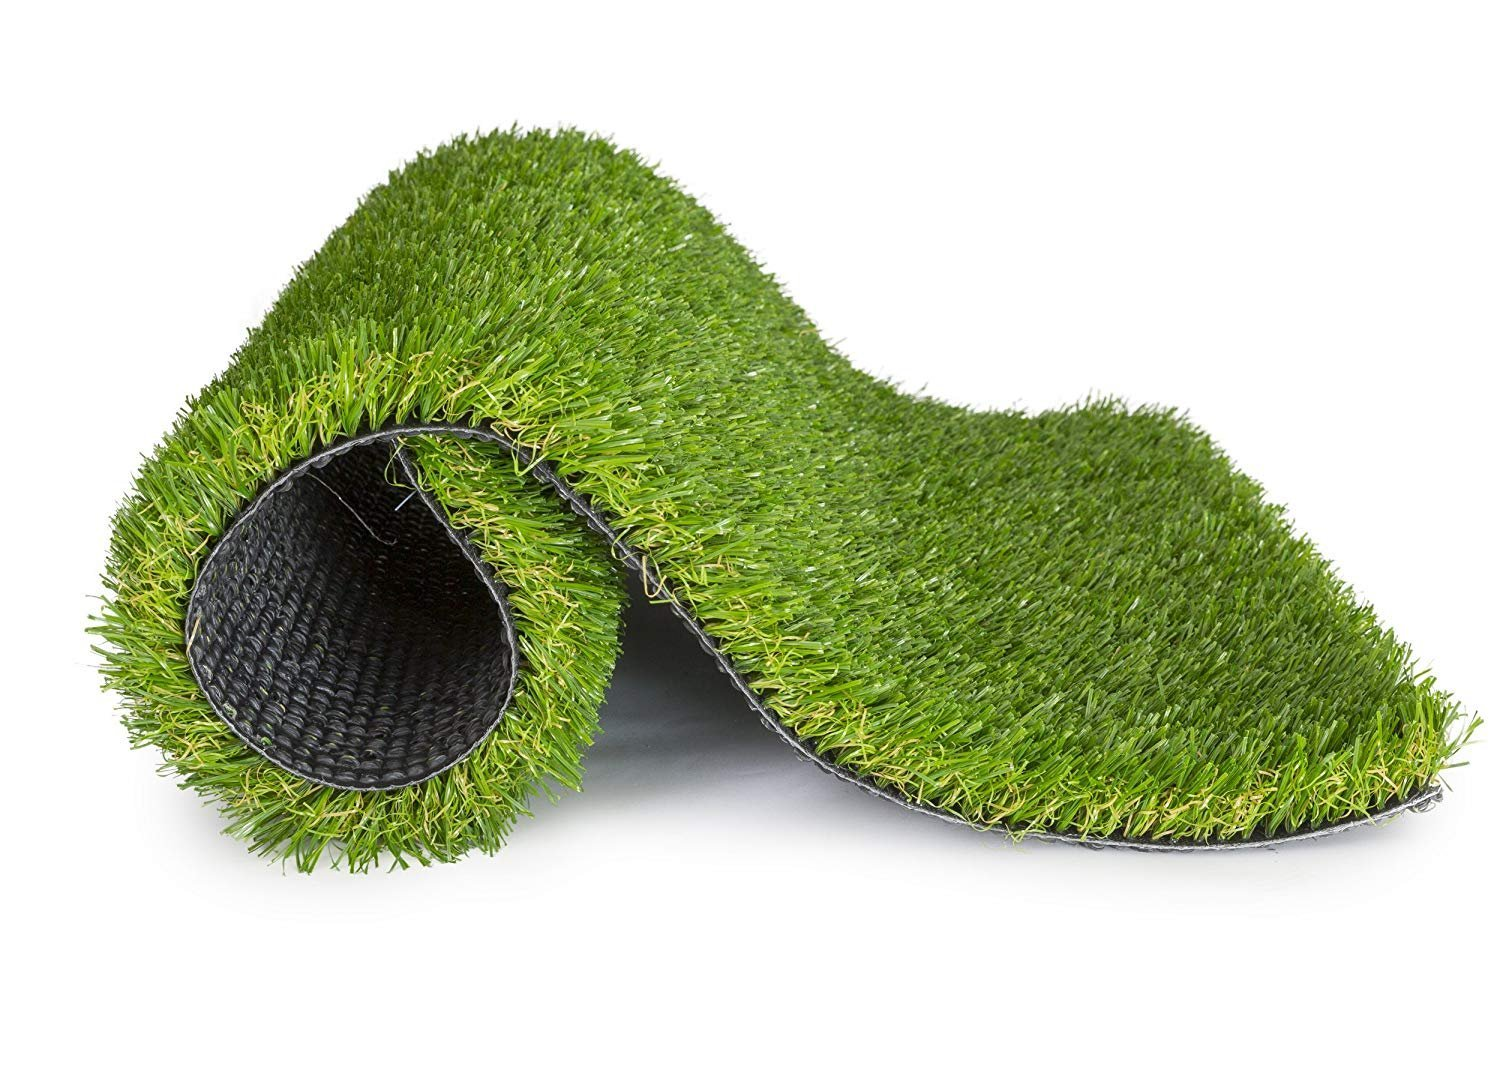 SavvyGrow 5.5 x 6.5 square Artificial Grass for Dogs Astroturf-Rug Synthetic Astro Fake Turfs for Patios, 5.5ft x 6.5ft = 35.7 sq ft, Green